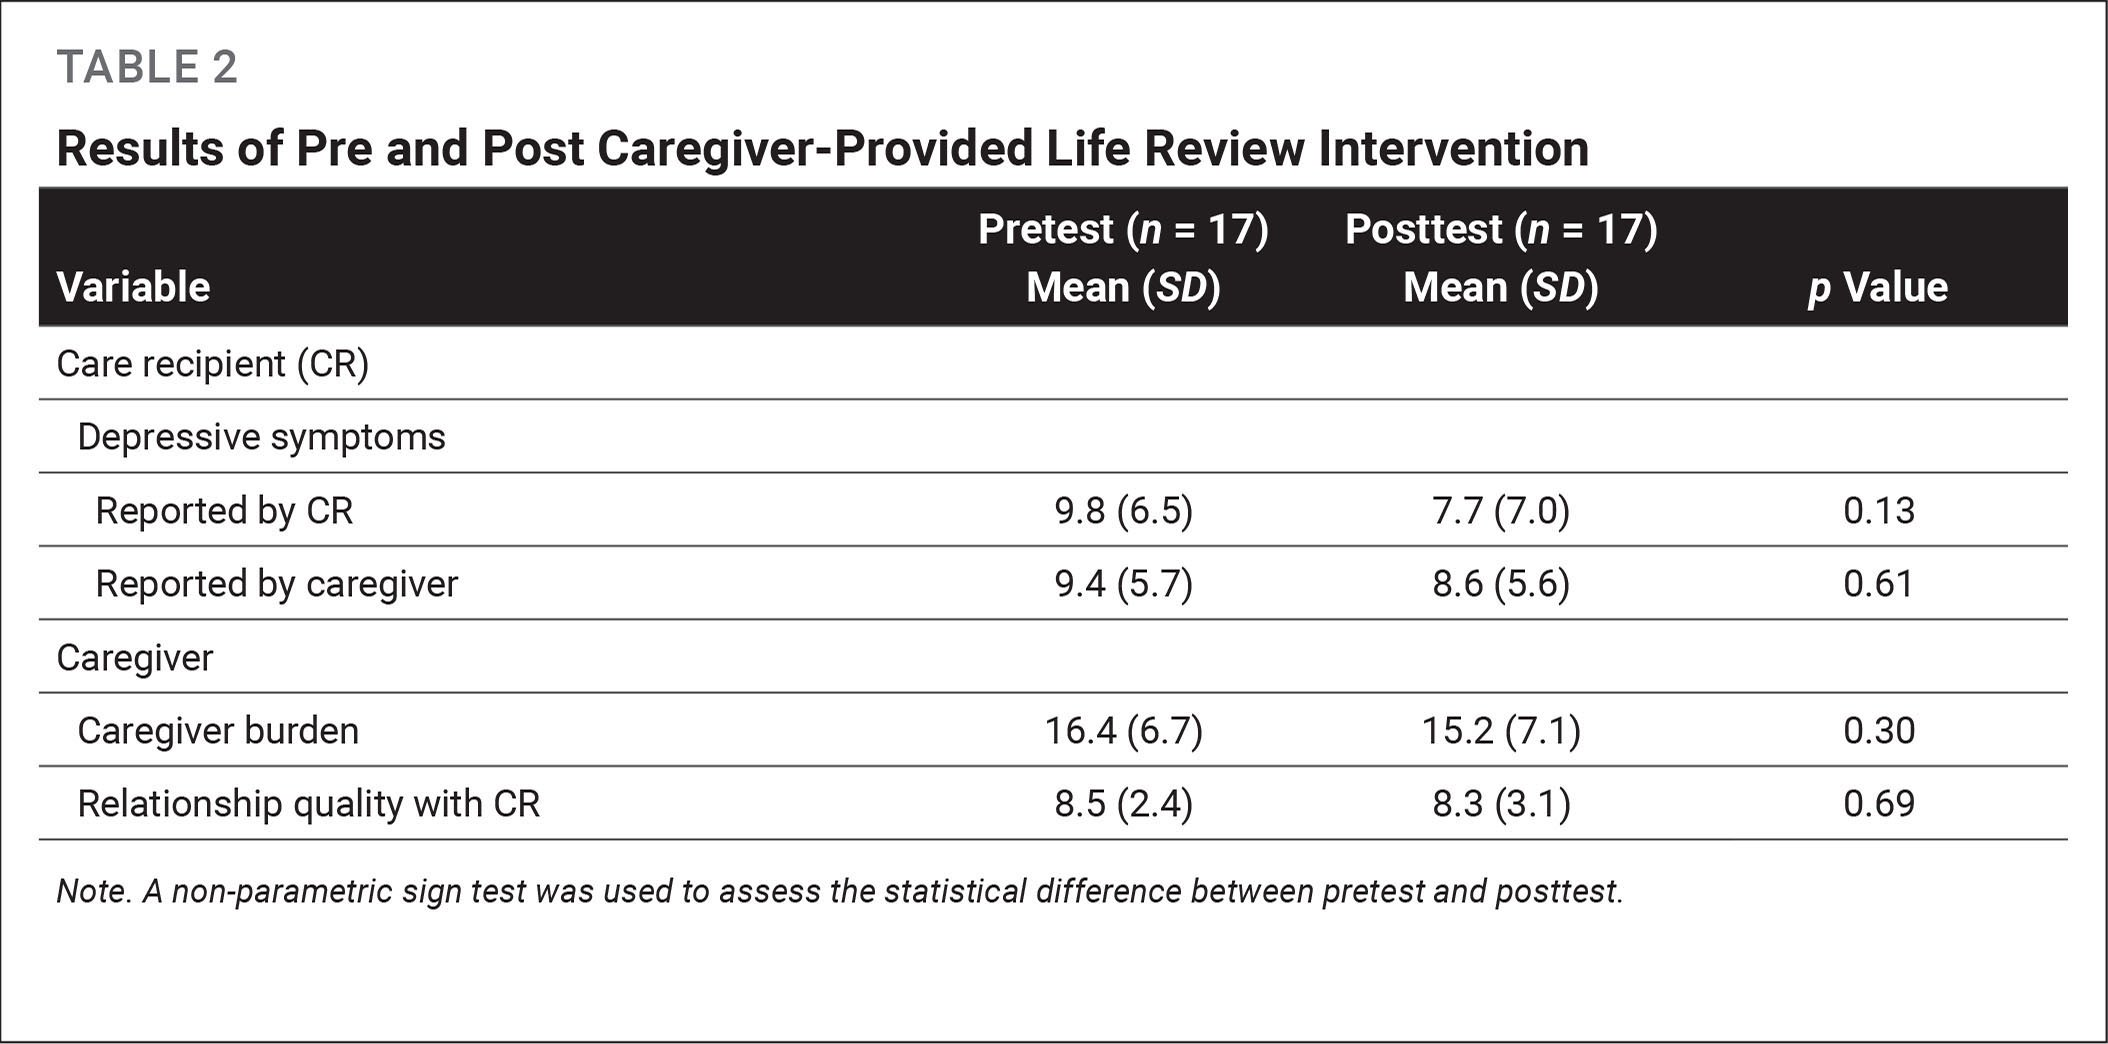 Results of Pre and Post Caregiver-Provided Life Review Intervention